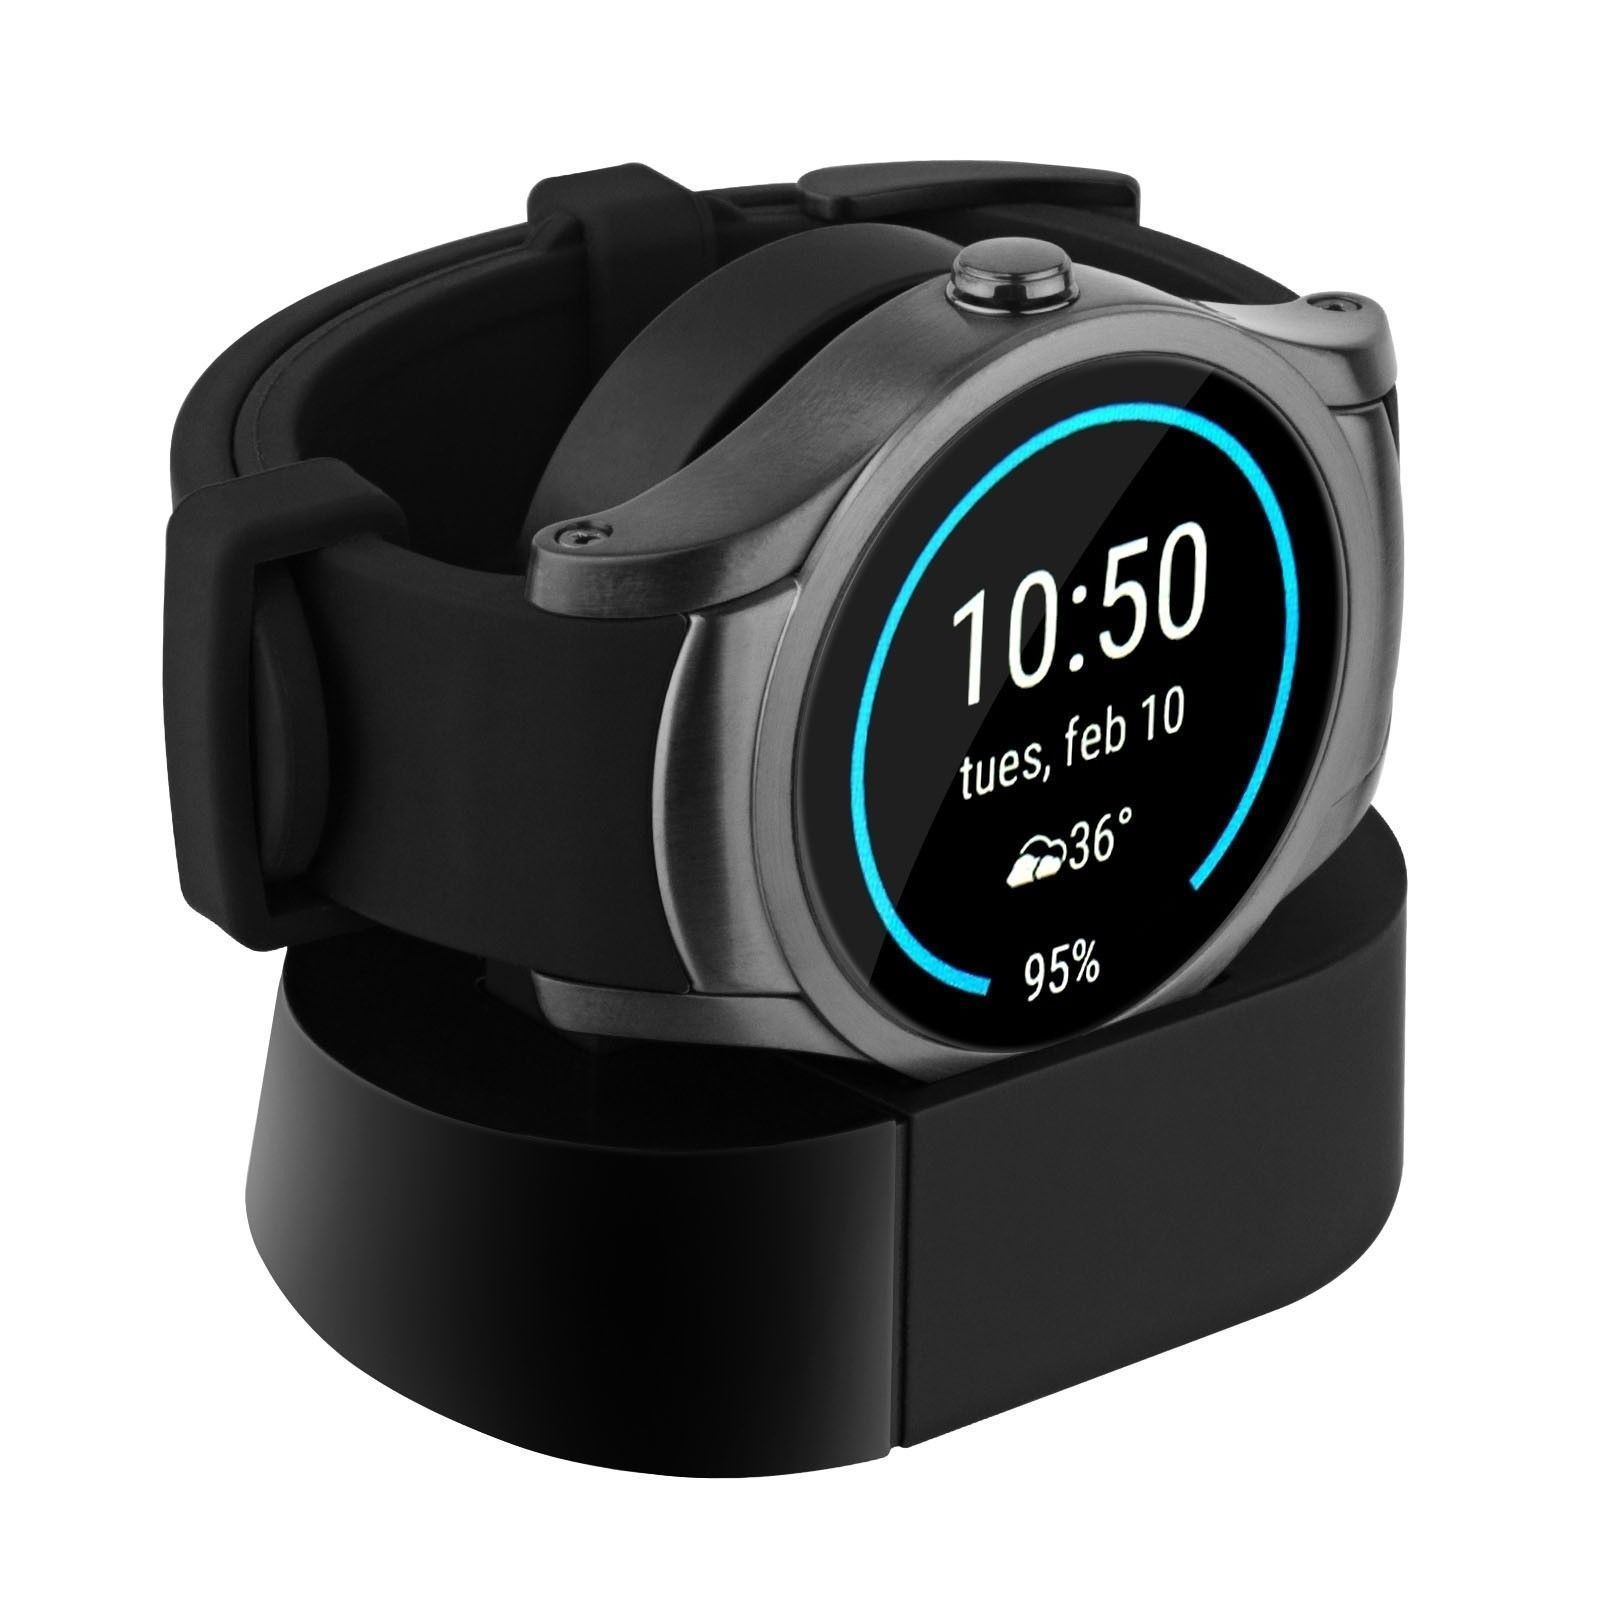 Wear24-Quanta-Smartwatch-by-Verizon-42mm-WiFi-Bluetooth-Android-Wear-2-0